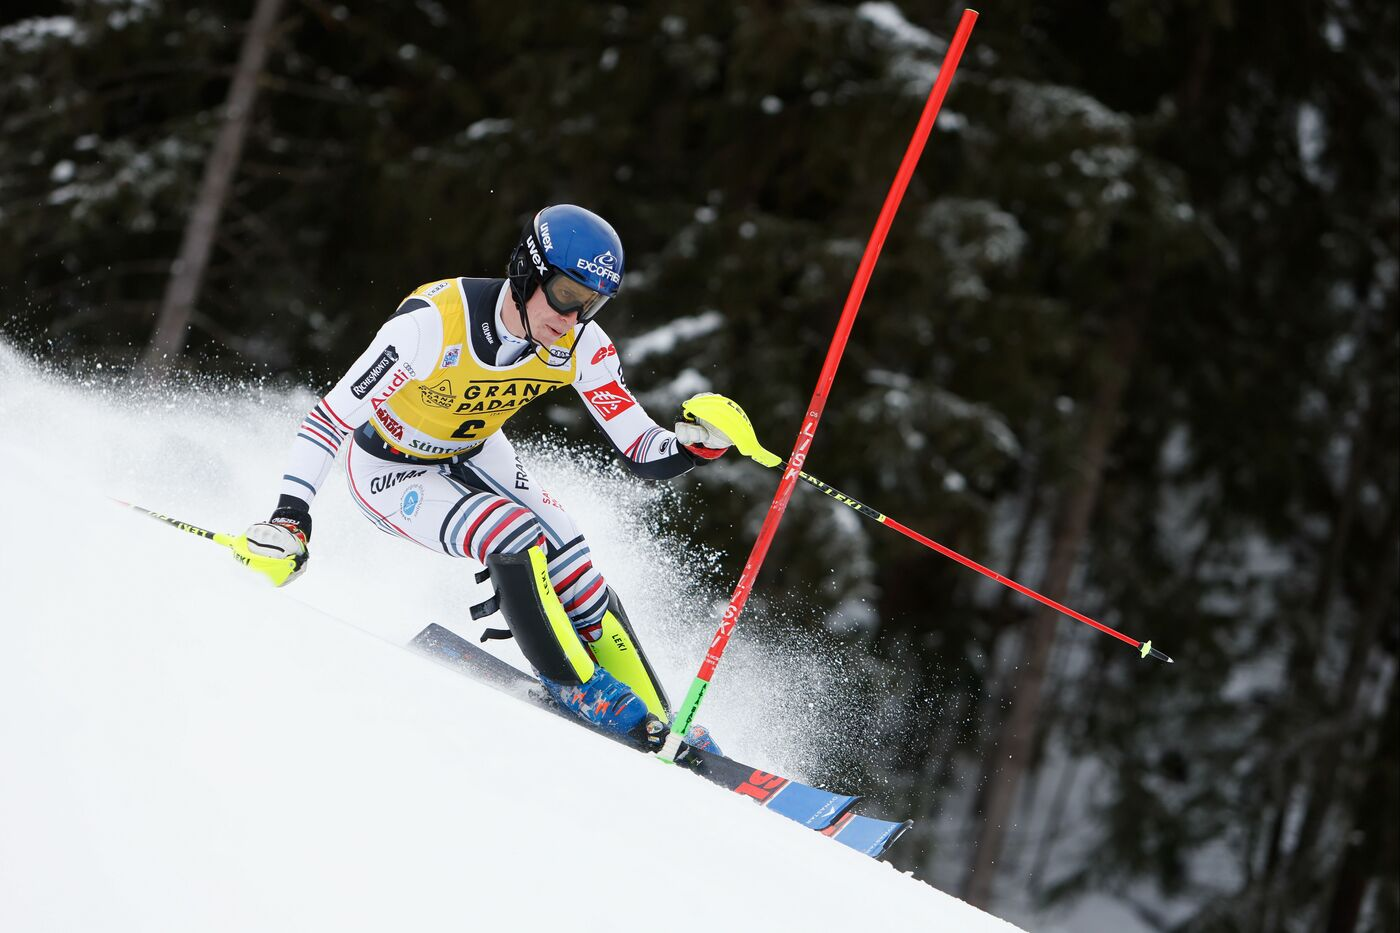 Longines Alpine Skiing Event: Longines welcomes young Alpine slalom standout Clément Noël to the Family 2